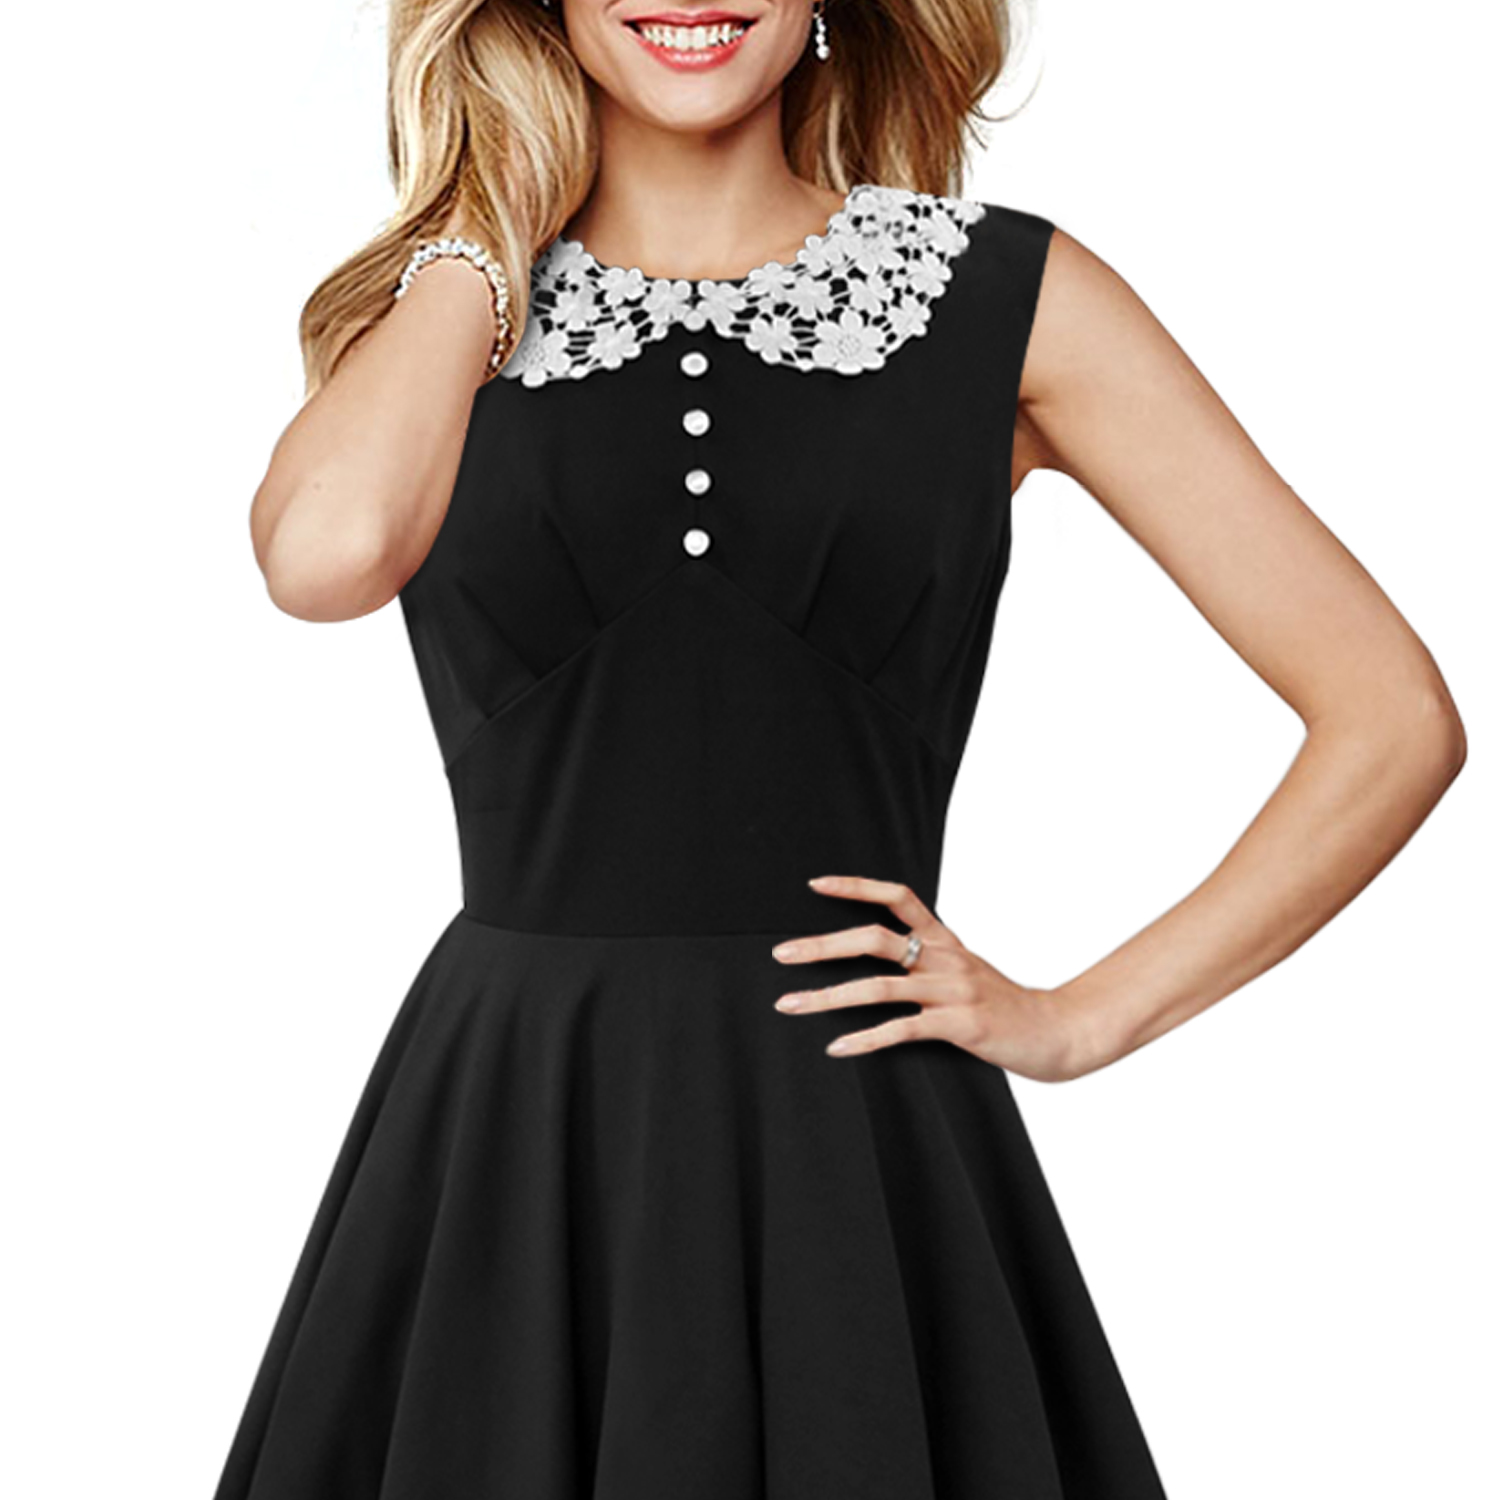 Stunning \'Rosie\' Classic Vintage Clairty Rockabilly 50\'s Pinup Prom ...